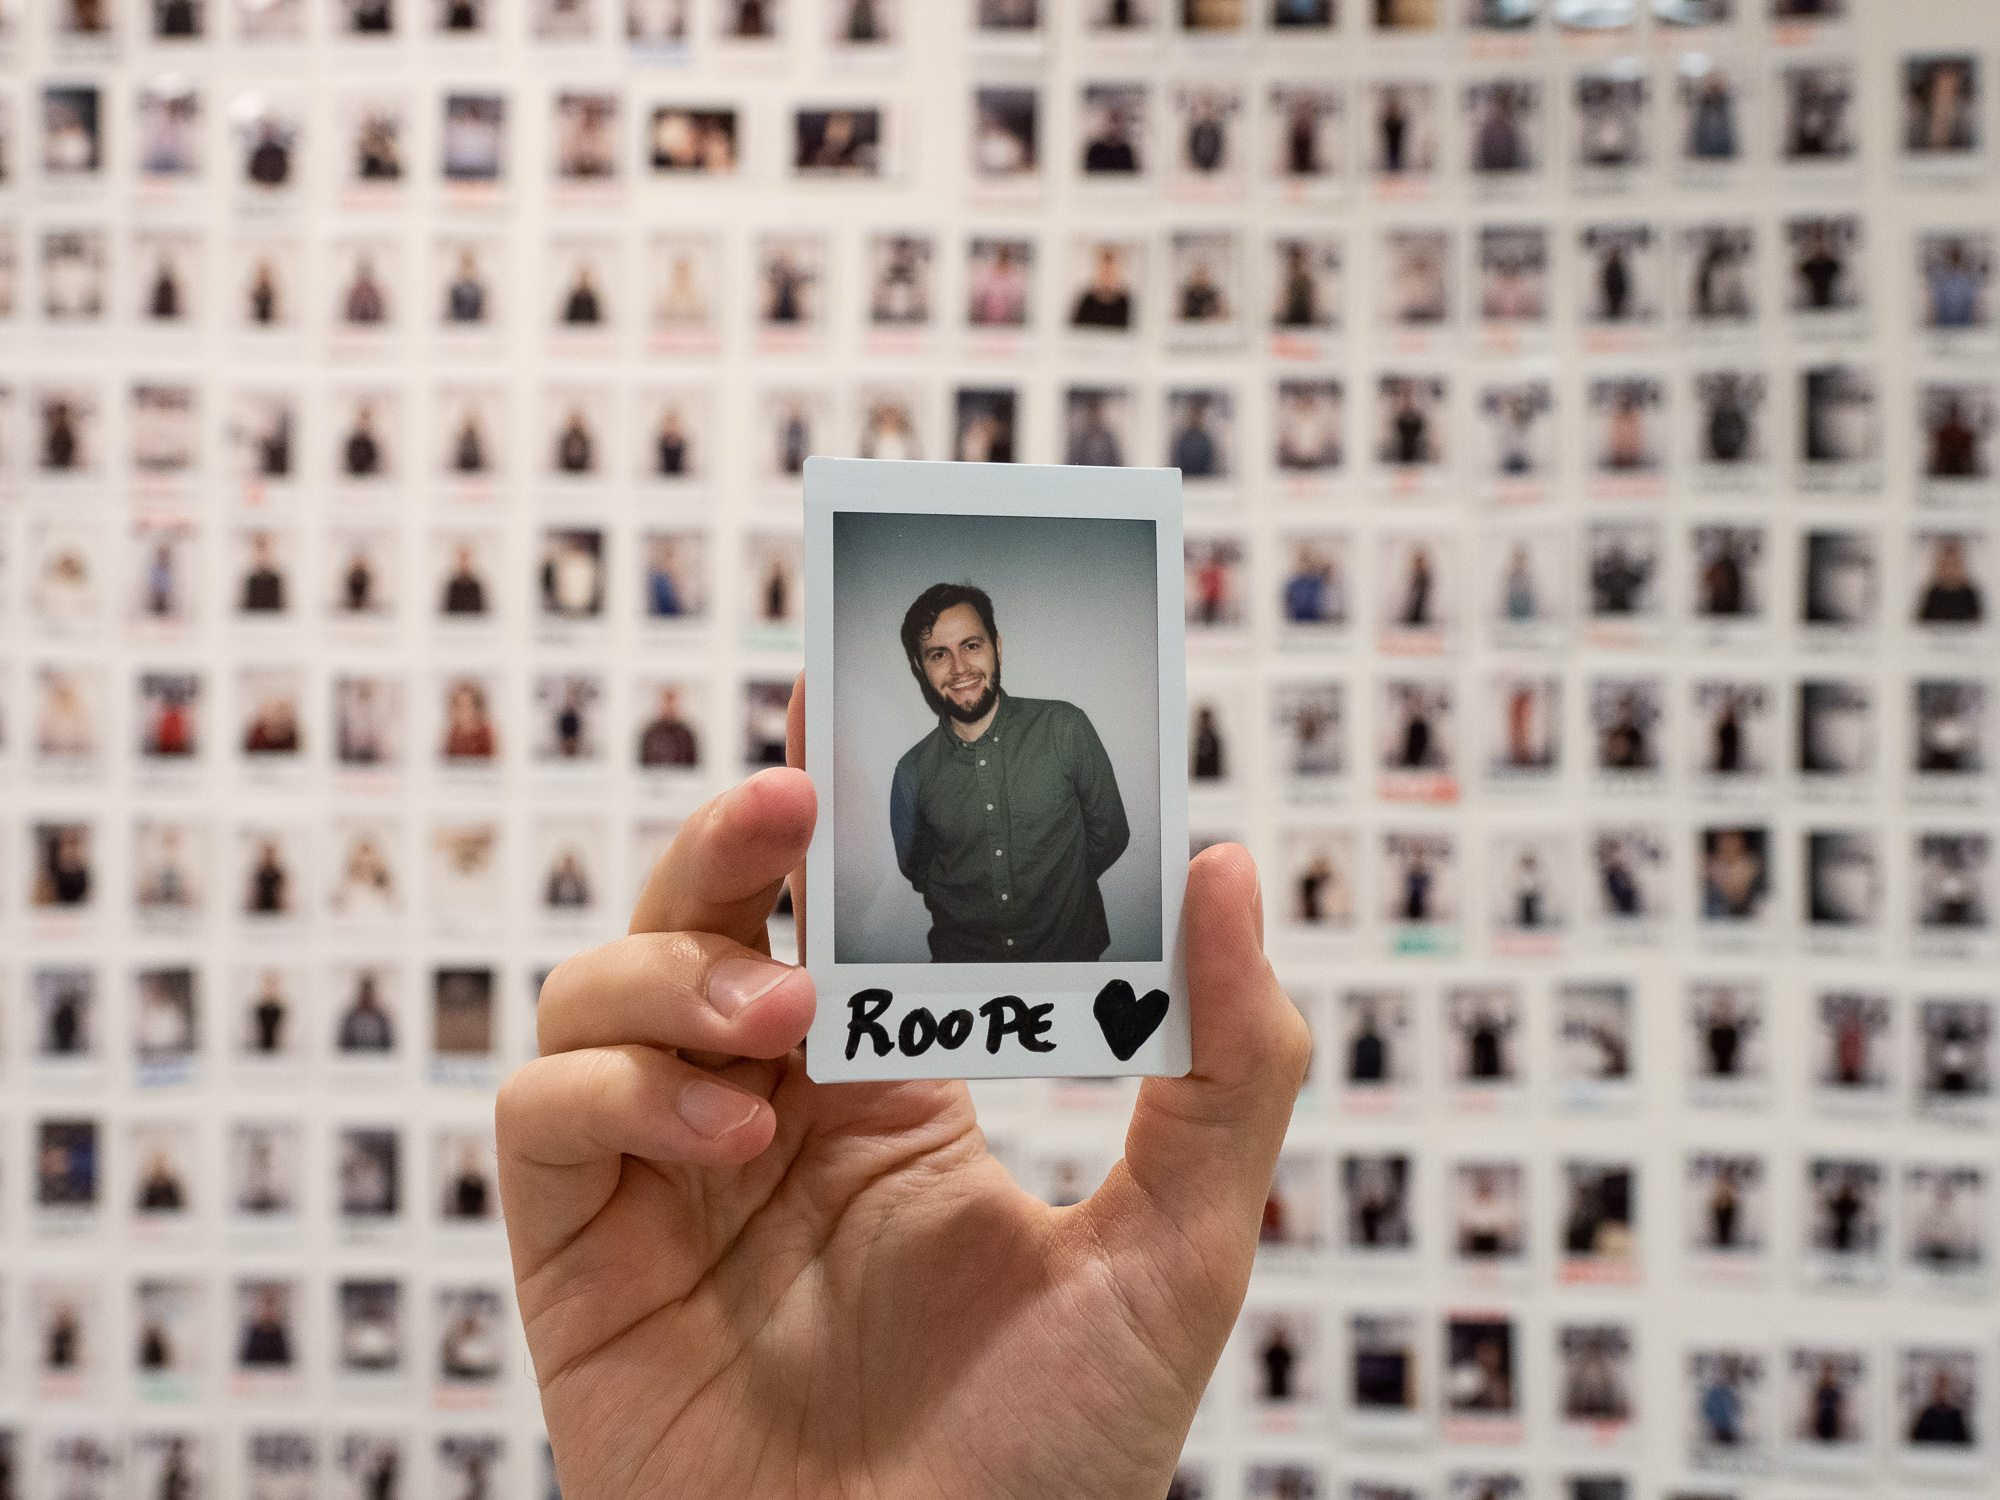 Country manager Roope in front of cleaner polaroid wall.